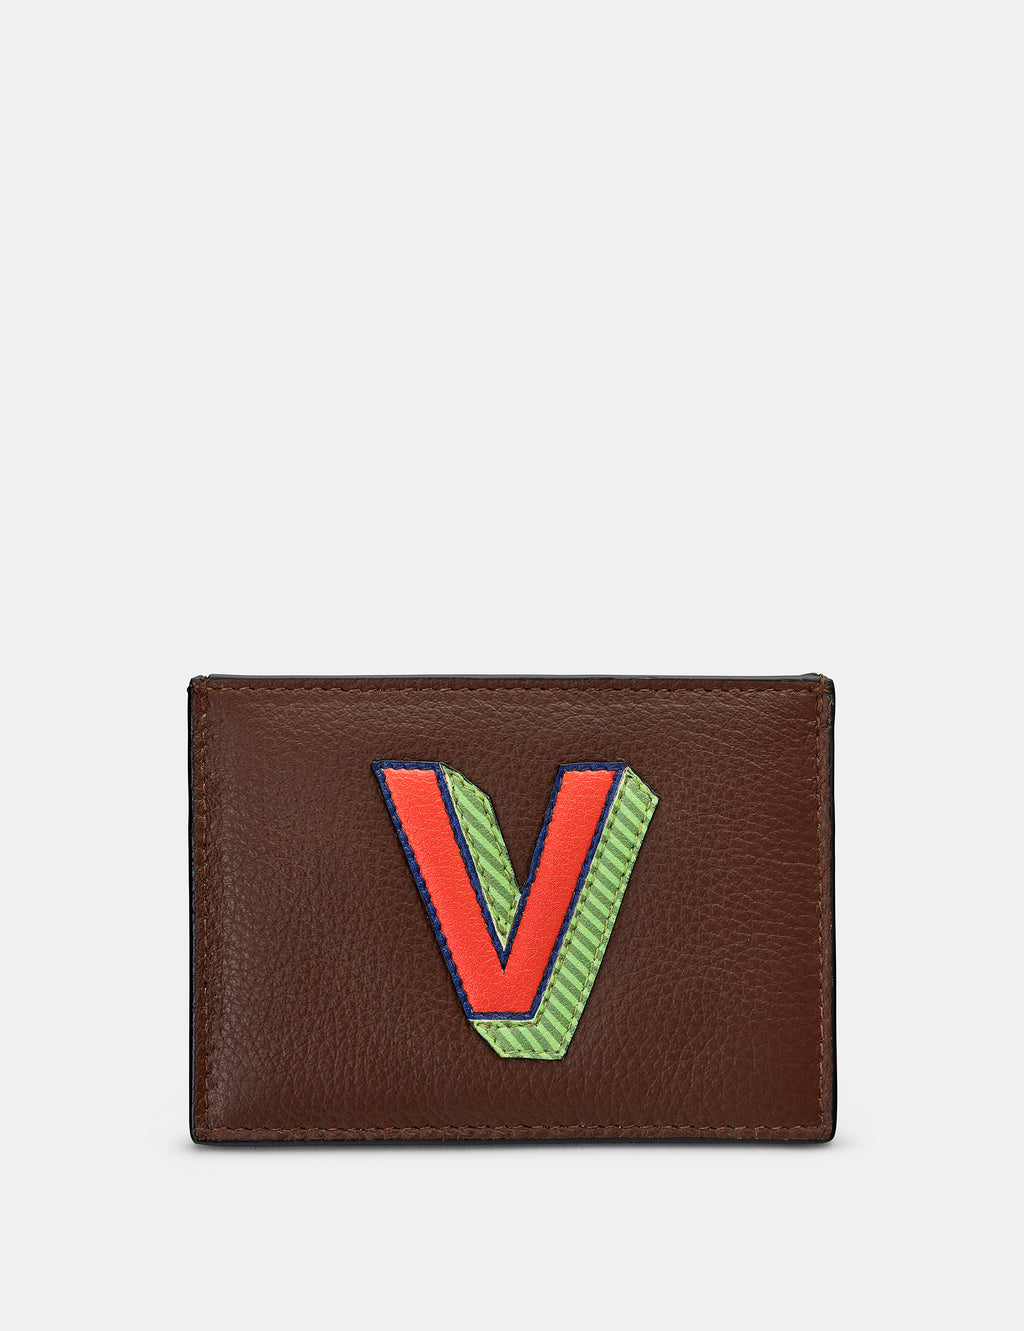 V Initial Brown Leather Card Holder